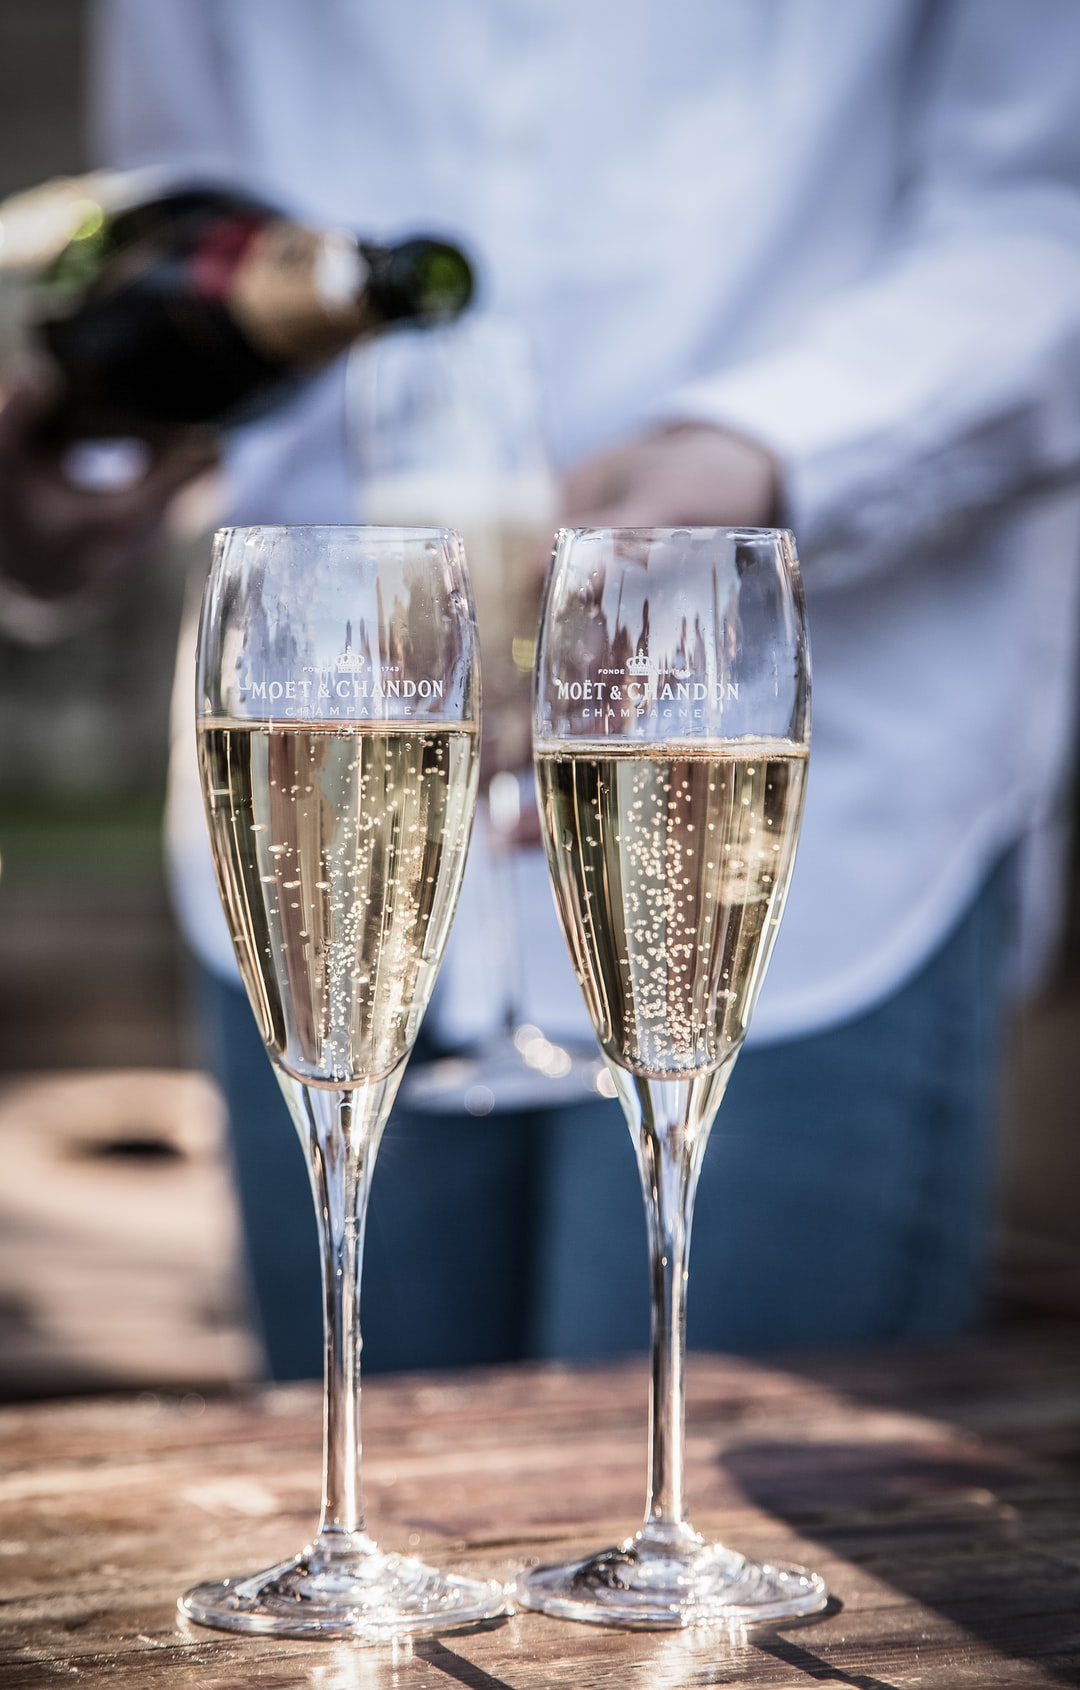 Moët Chandon Pictures Download Free Images On Unsplash